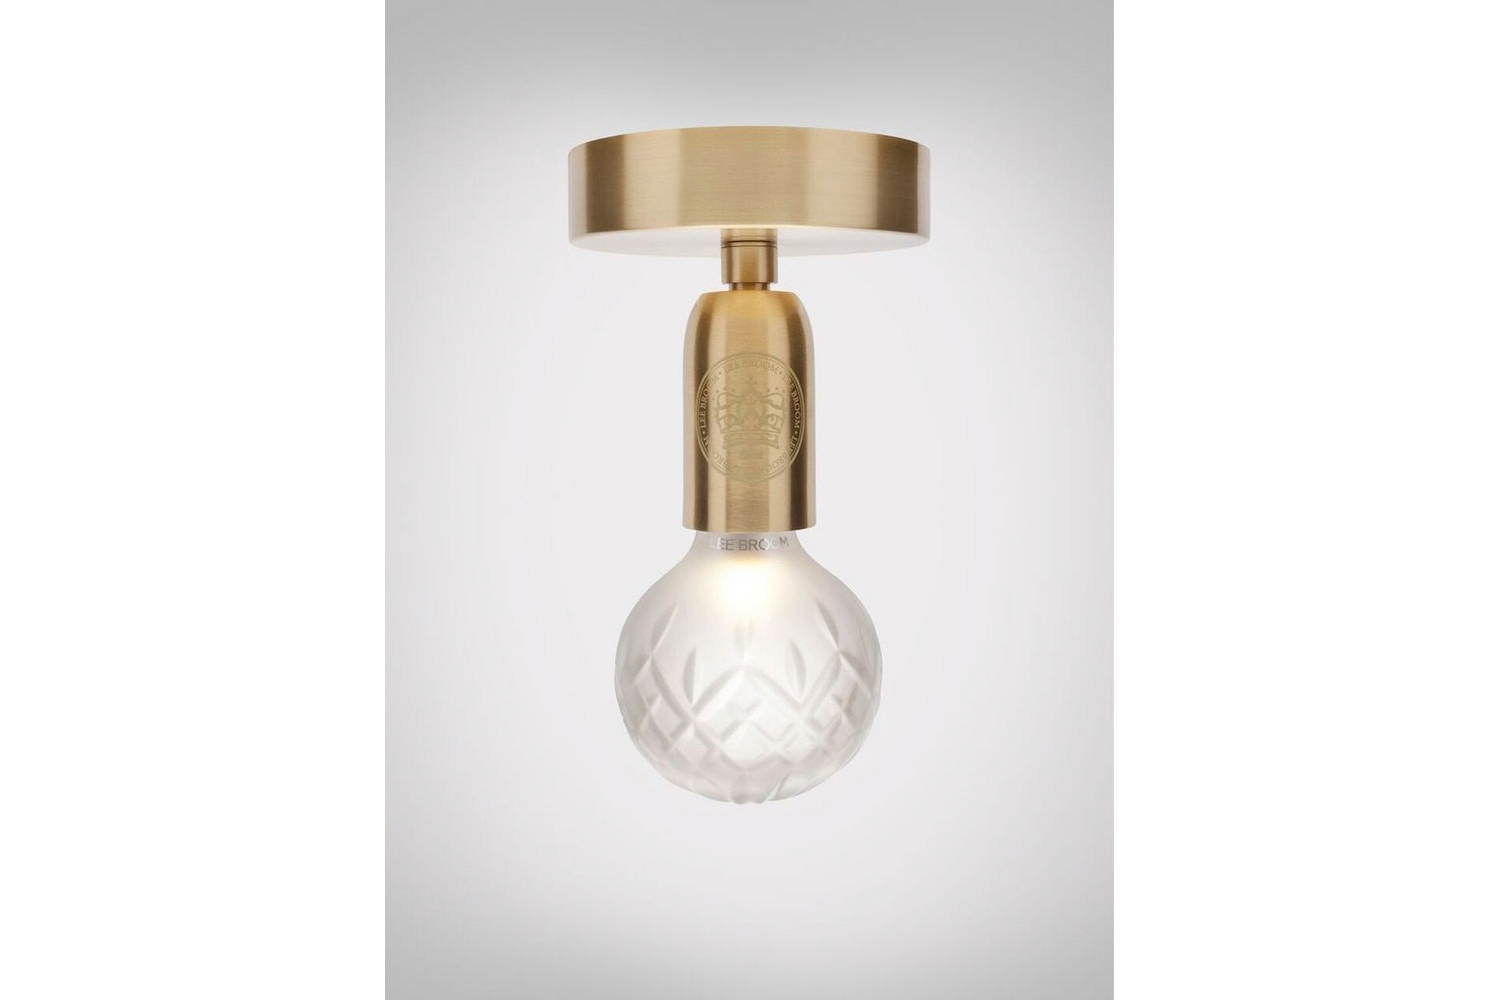 Frosted Crystal Bulb Ceiling Lamp - Brushed Brass by Lee Broom